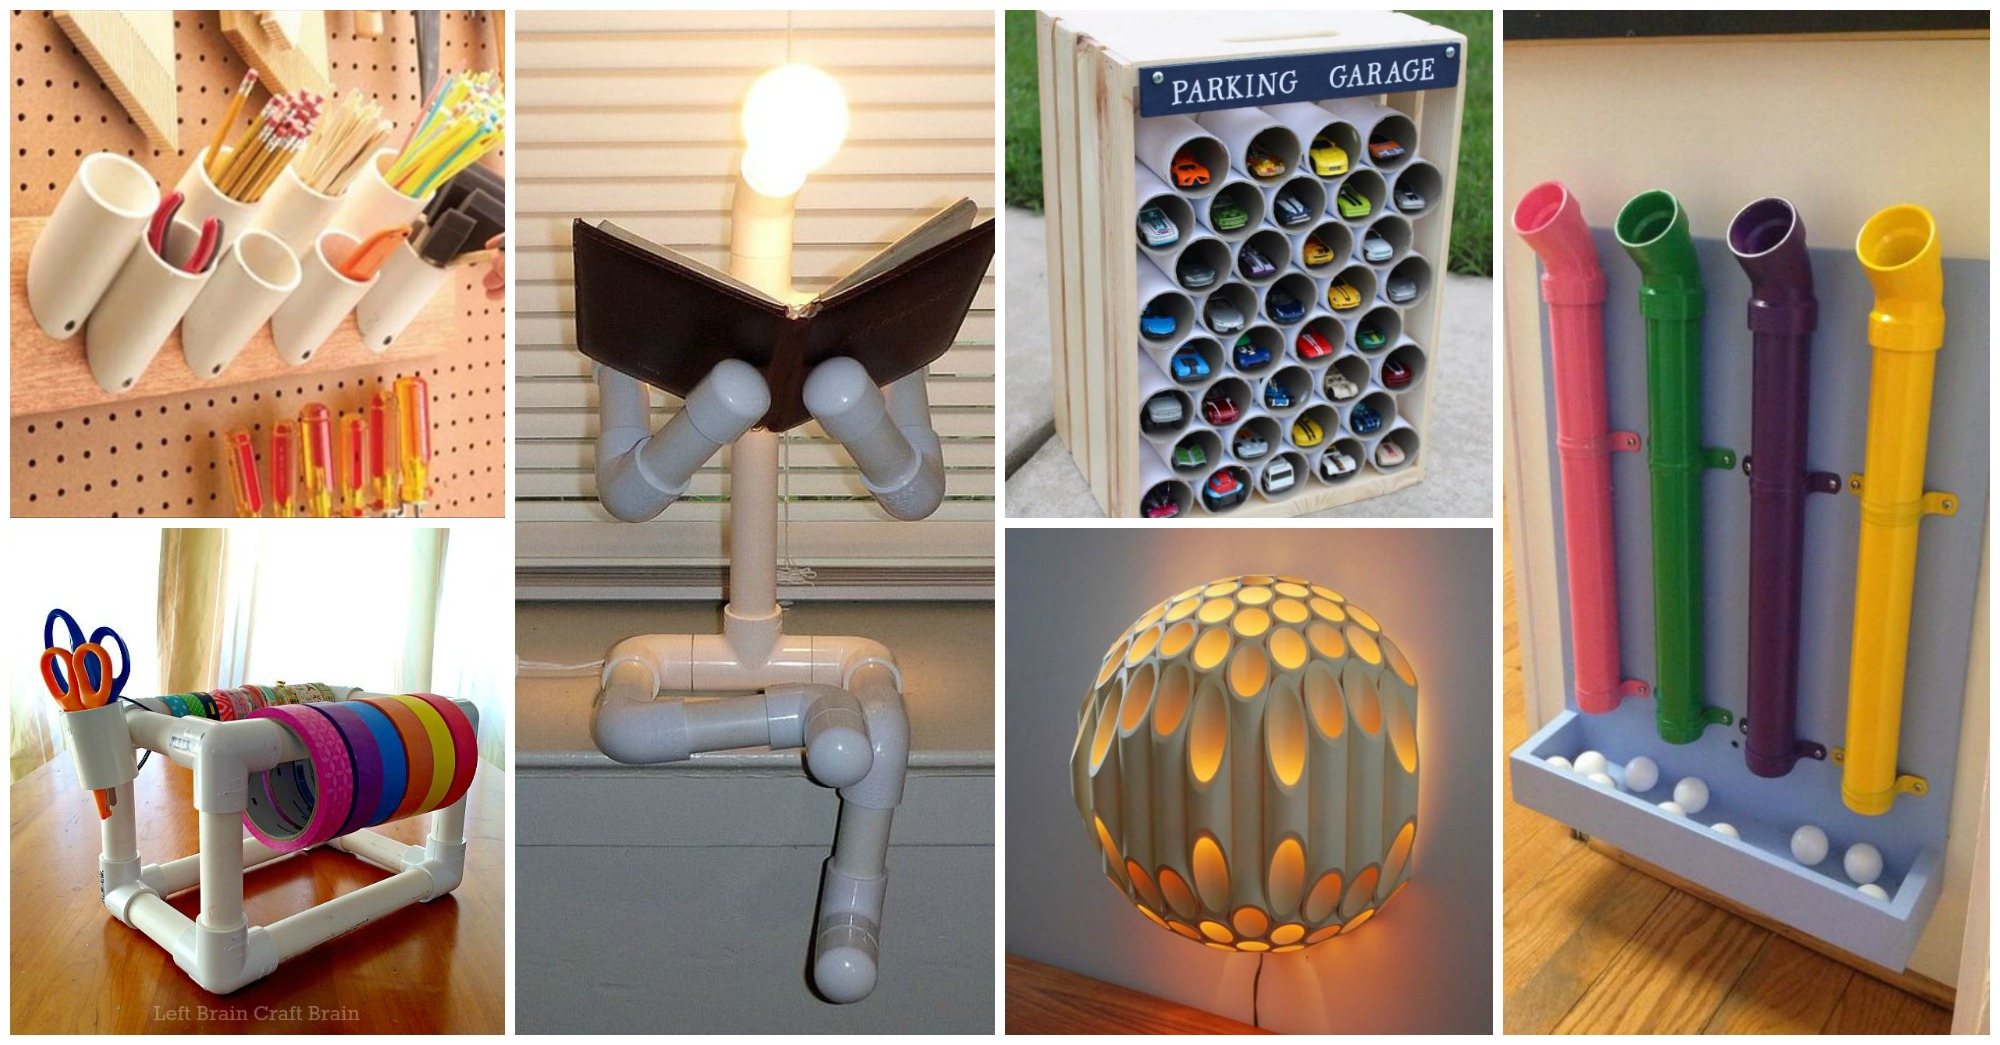 Diy Pvc Pipes As Bright And Creative Solutions For Your